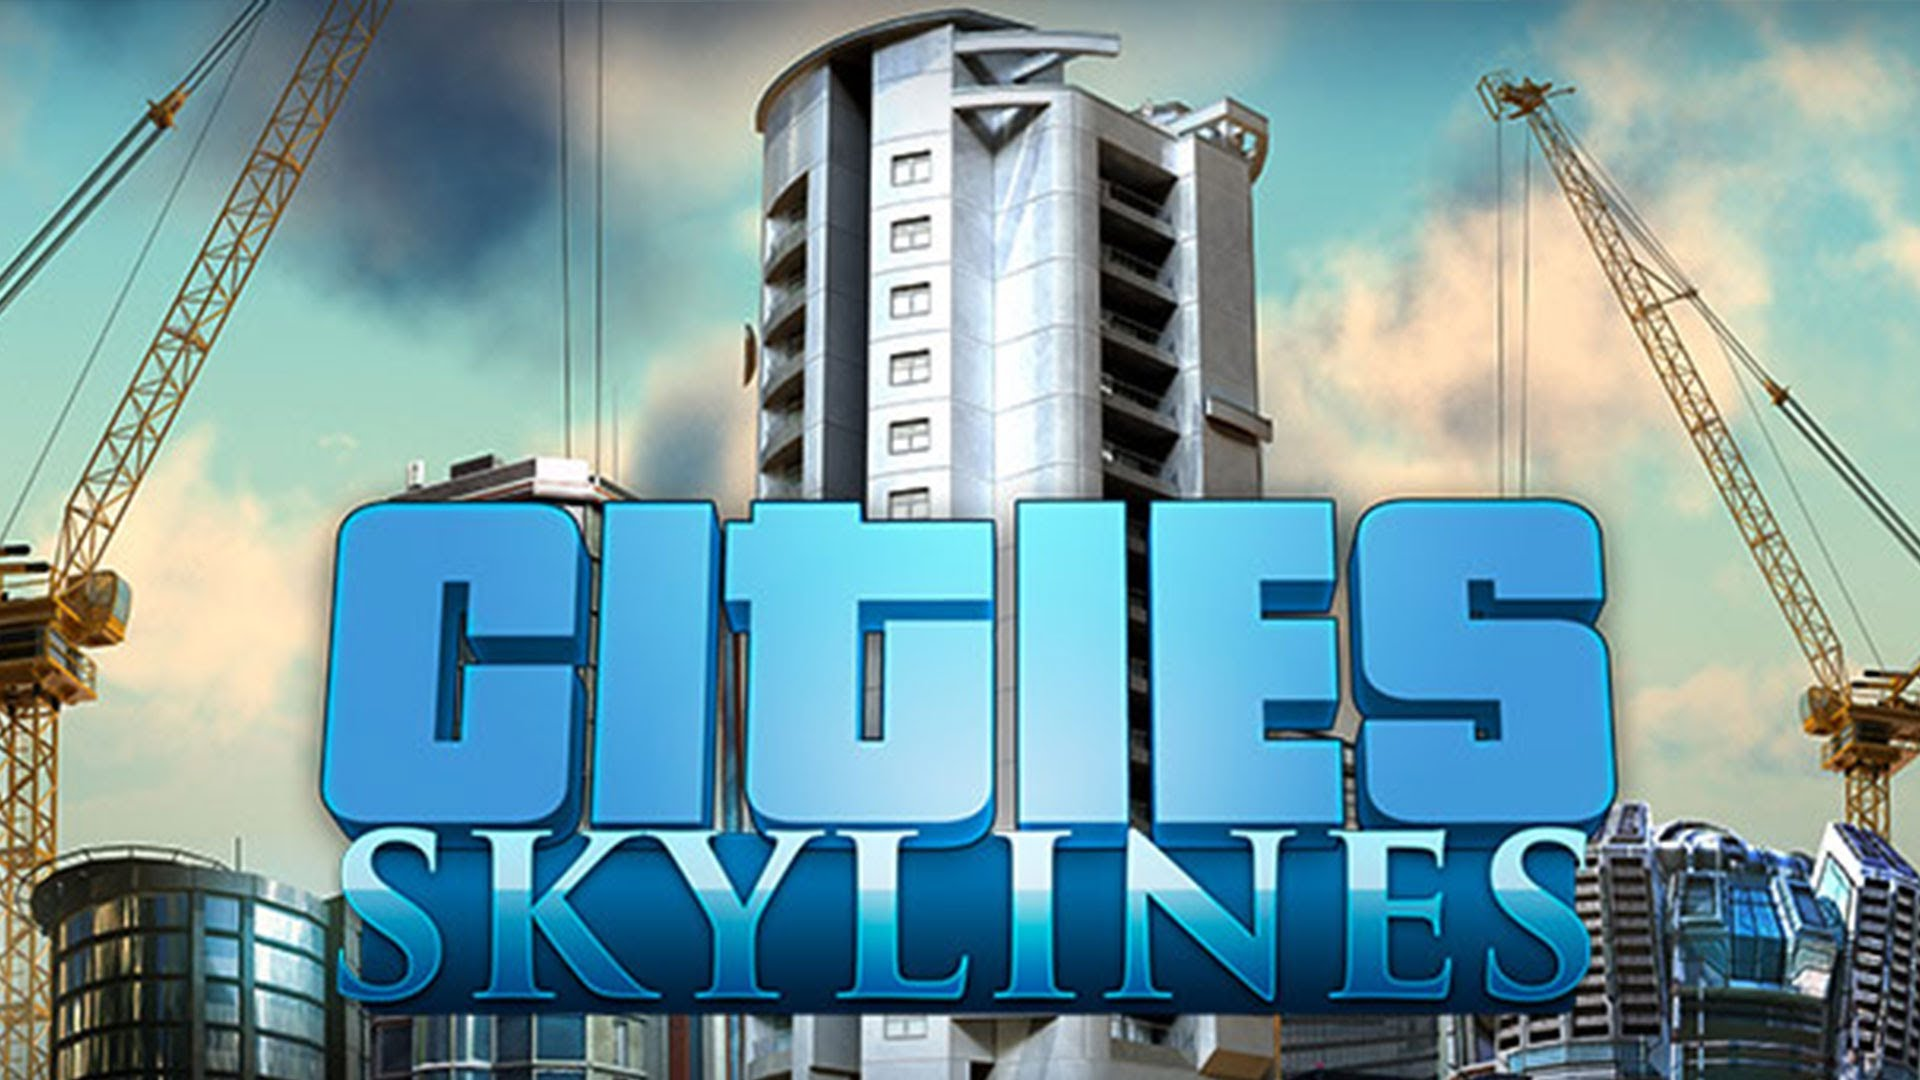 Cities: Skylines (Steam Key RU/CIS)